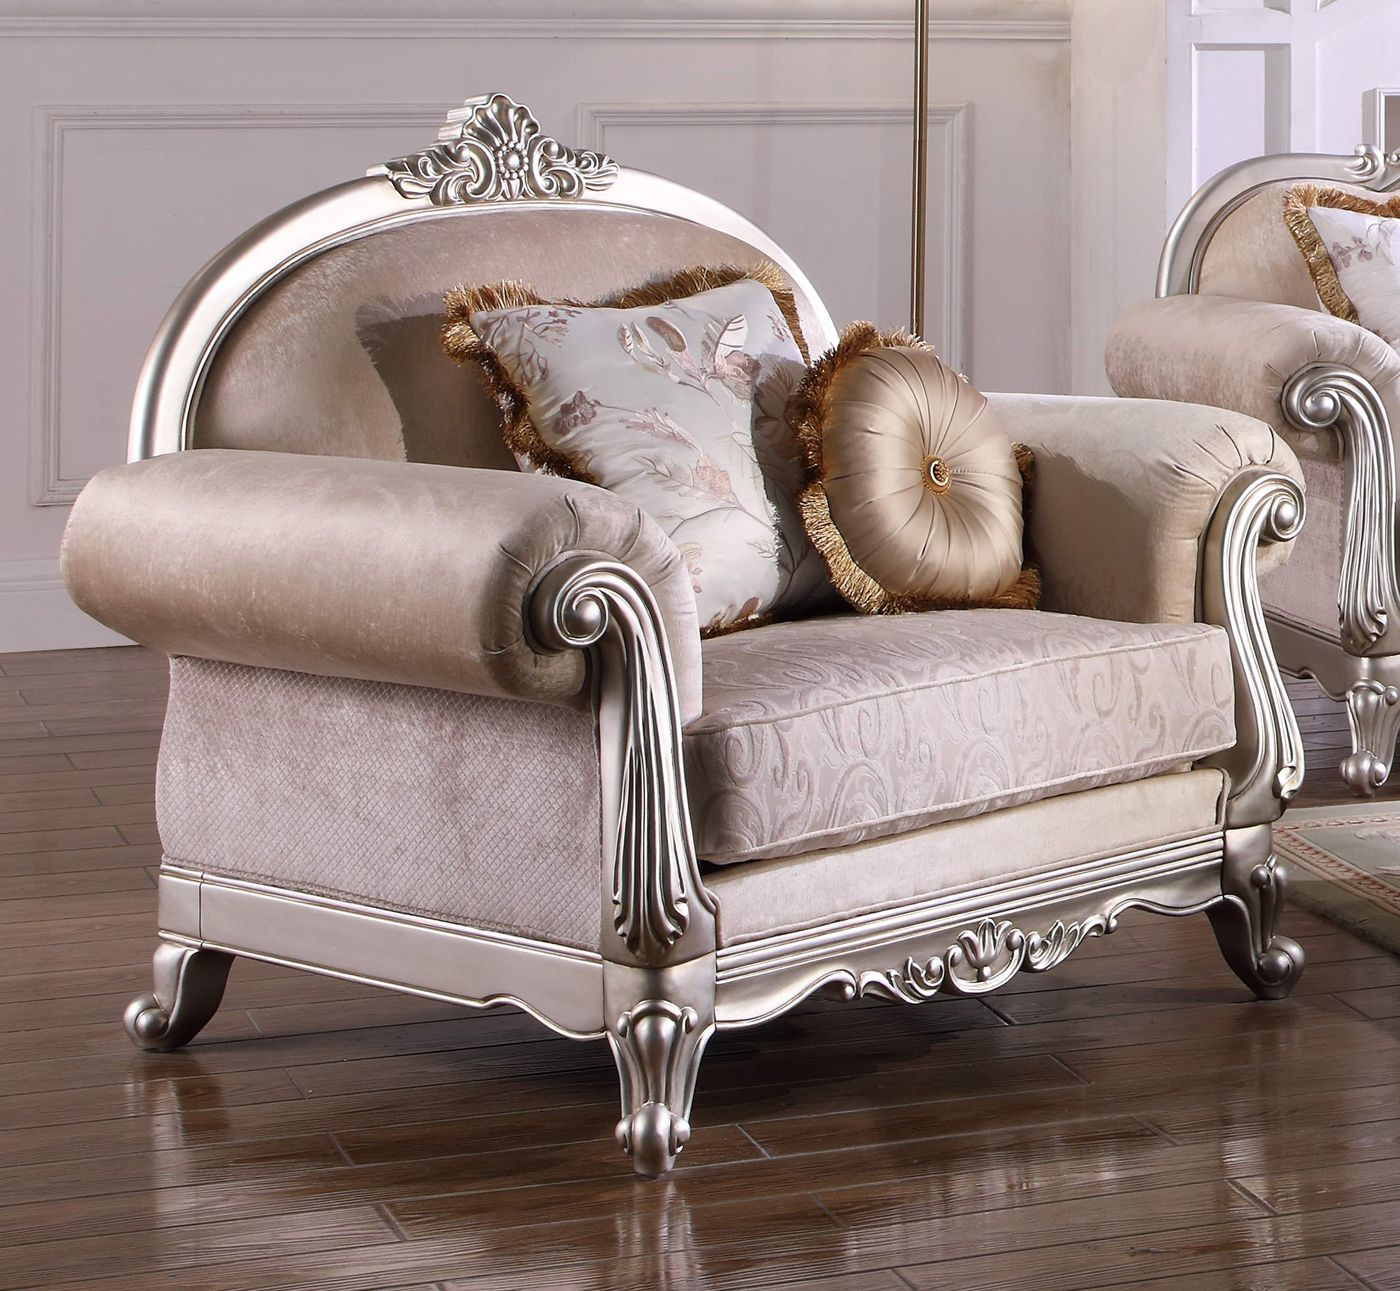 Traditional Living Room Furniture Sectionals: Luxurious Traditional Living Room Furniture Sofa Set